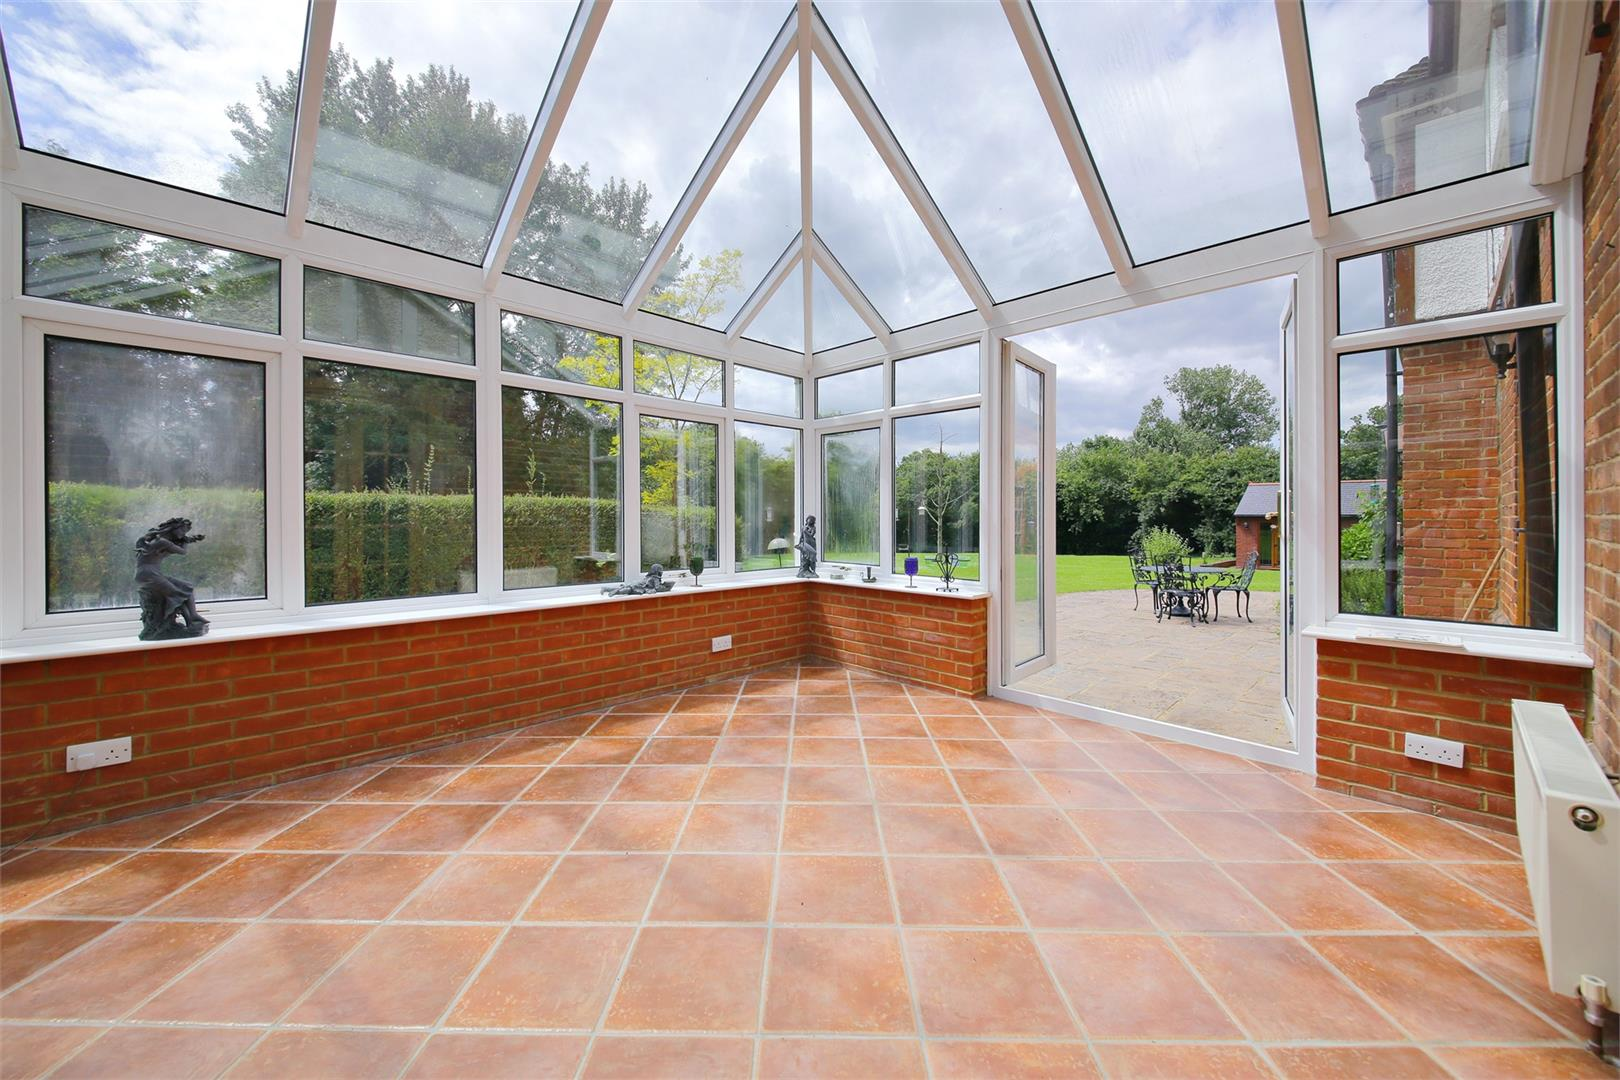 6 bed to rent in Elstree - (Property Image 4)